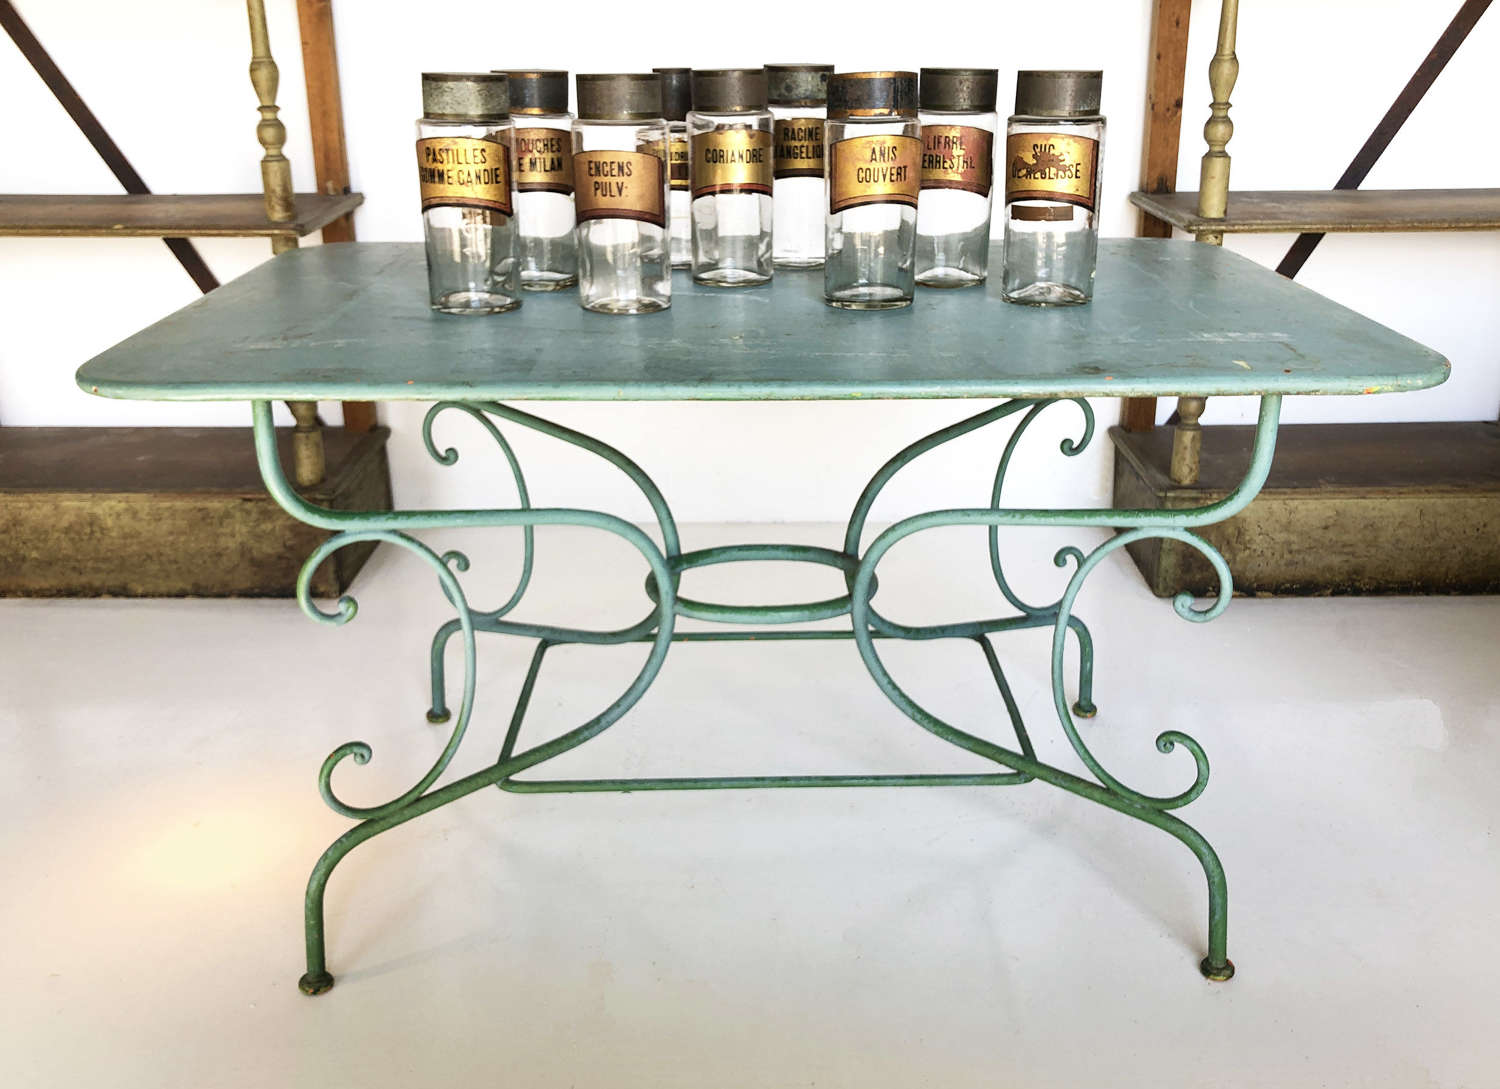 A classic 19th c French Wrought Iron Garden Table with old green paint